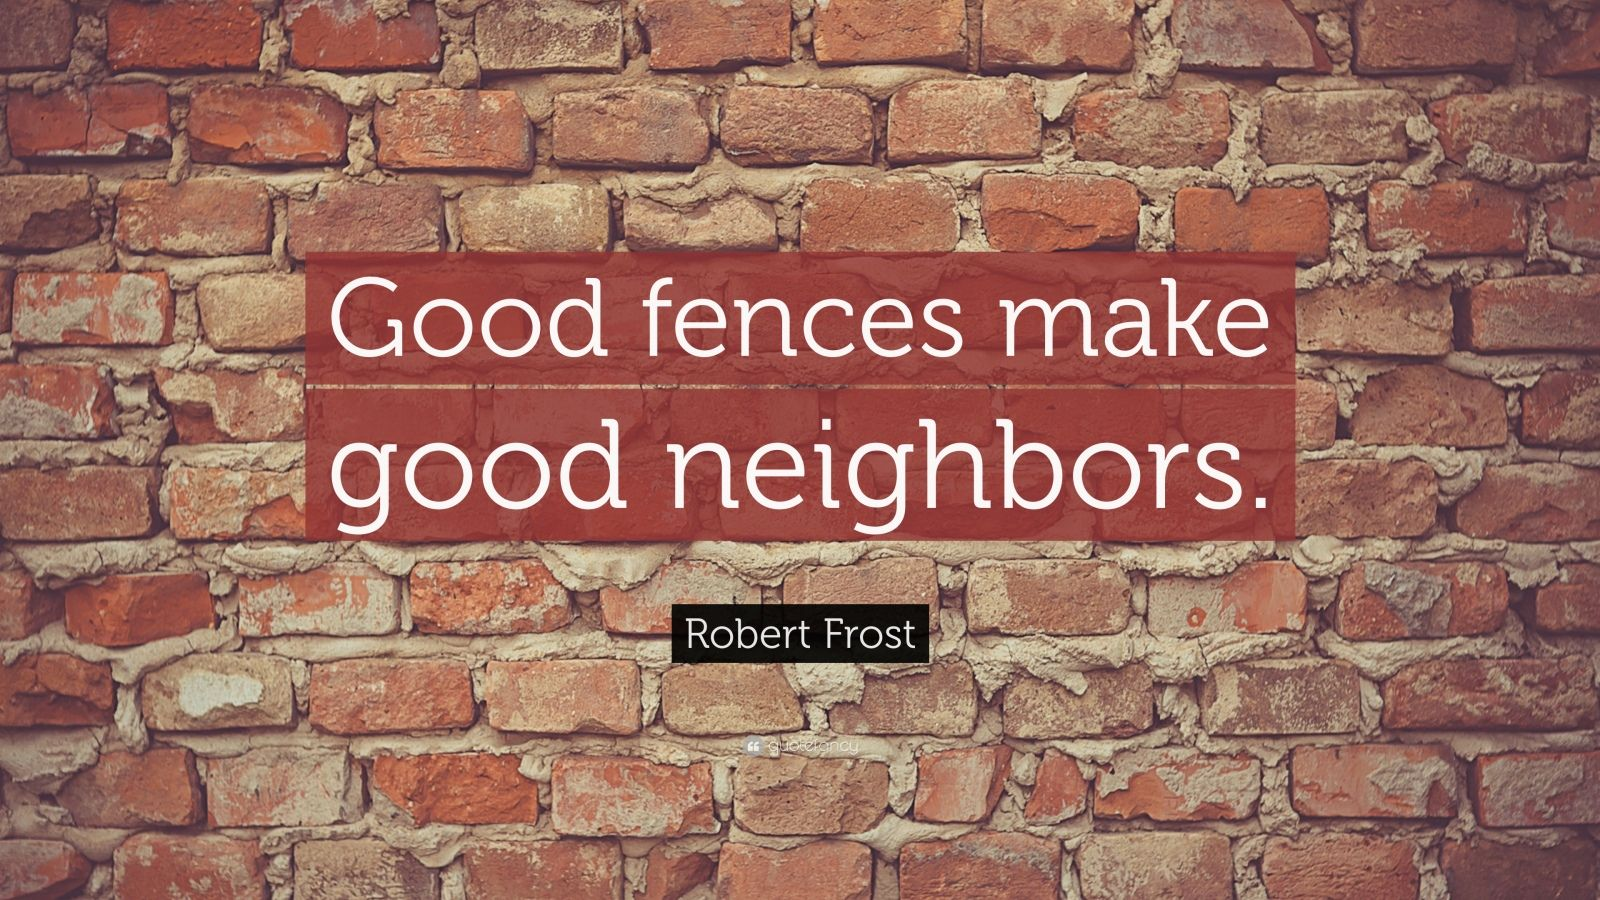 Robert Frost Quote Good Fences Make Good Neighbors Robert Frost Quotes Neighbor Quotes Steve Jobs Quotes